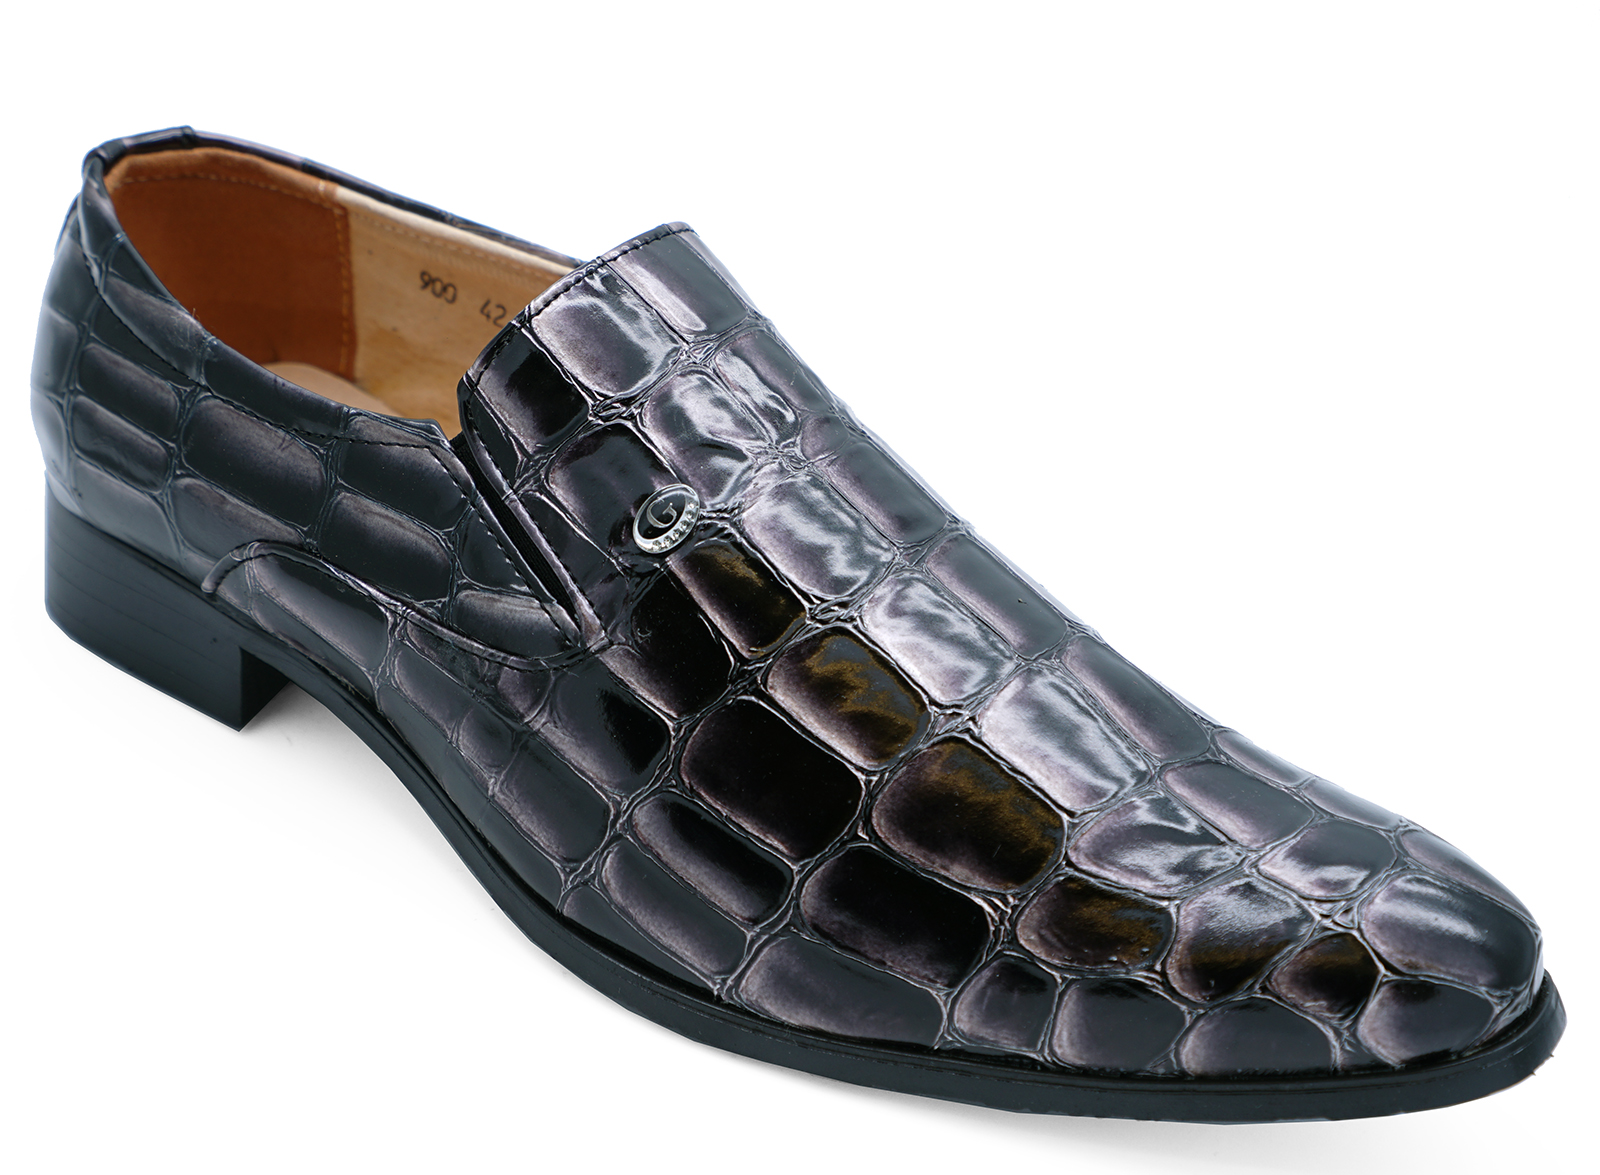 thumbnail 5 - MENS-SLIP-ON-WORK-WEDDING-SMART-CASUAL-LOAFERS-FORMAL-SUIT-SHOES-SIZES-6-11